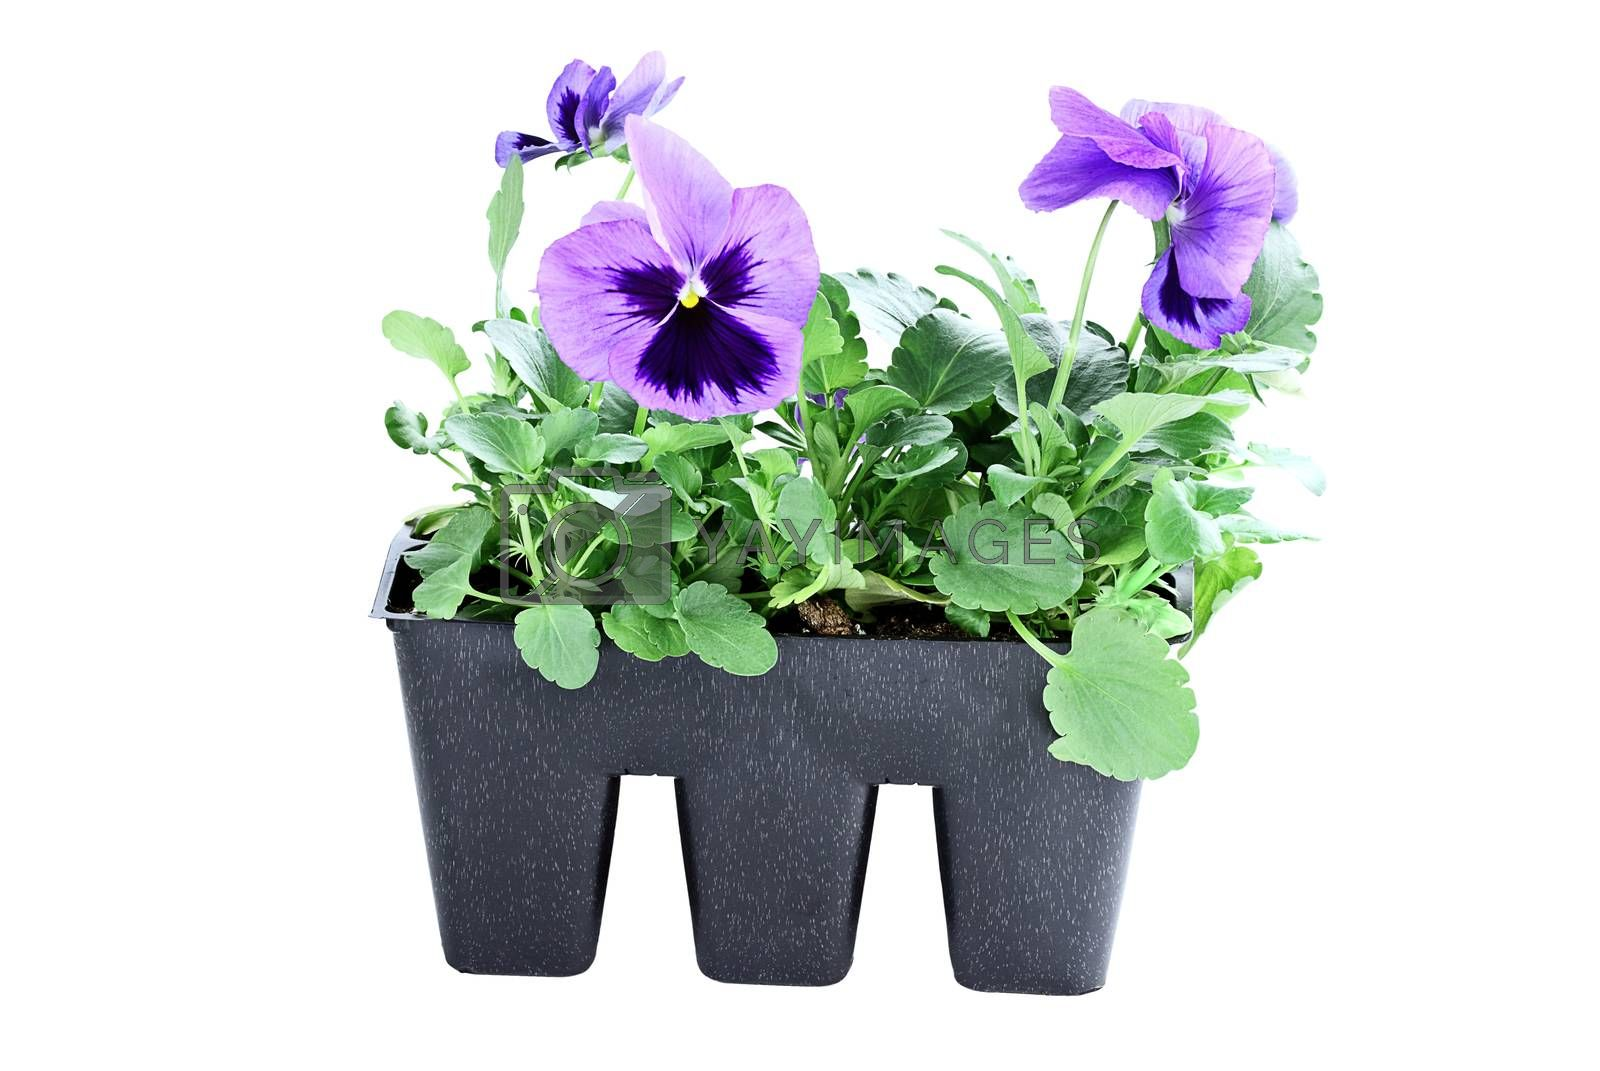 Royalty free image of Purple Pansies by StephanieFrey